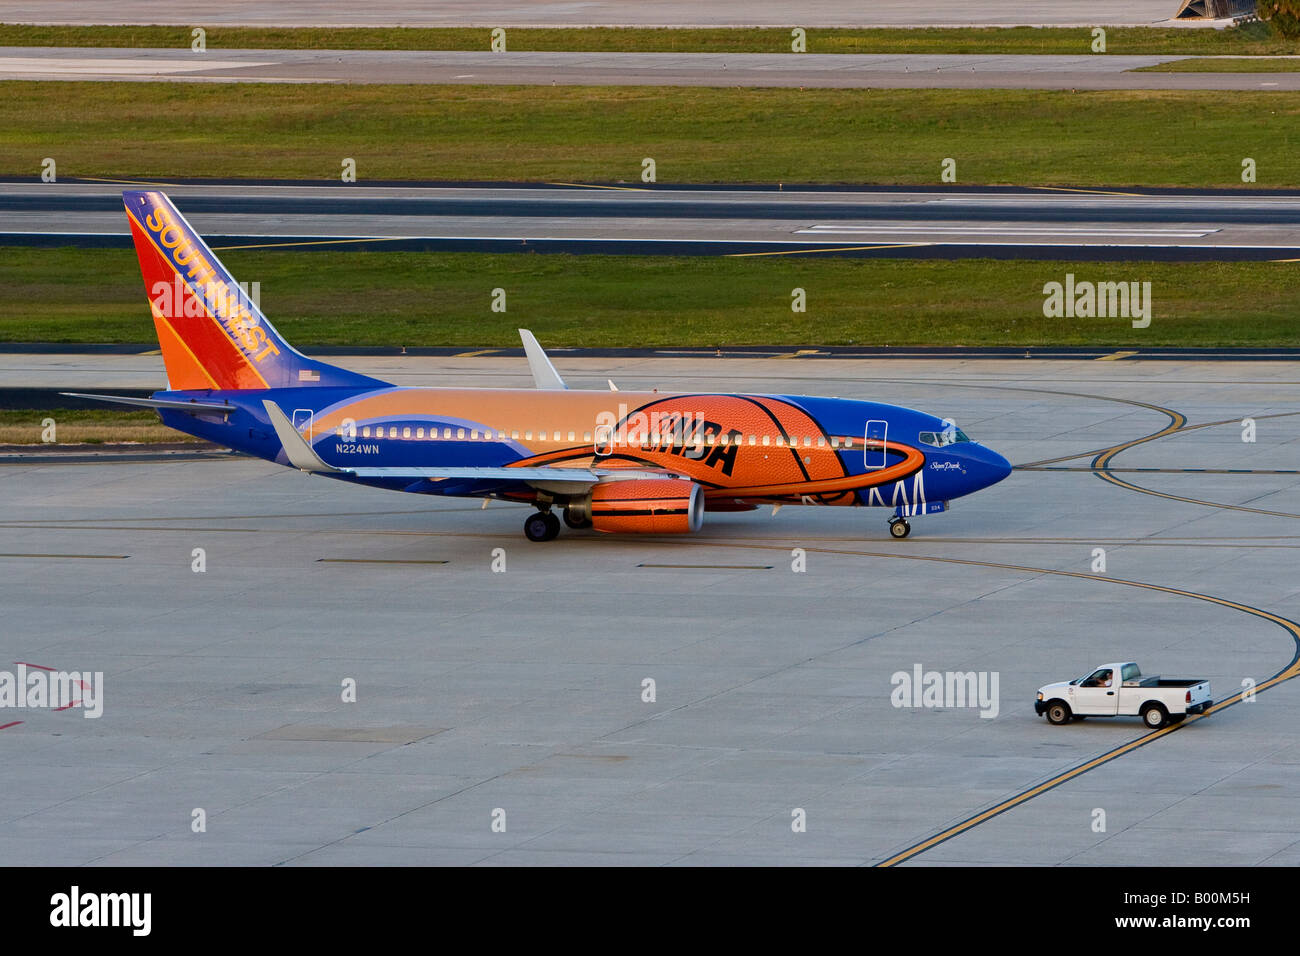 9bc02ee558a7 Southwest Airlines NBA Decorated Aircraft on the Tarmac at Tampa  International Airport in Tampa Florida USA